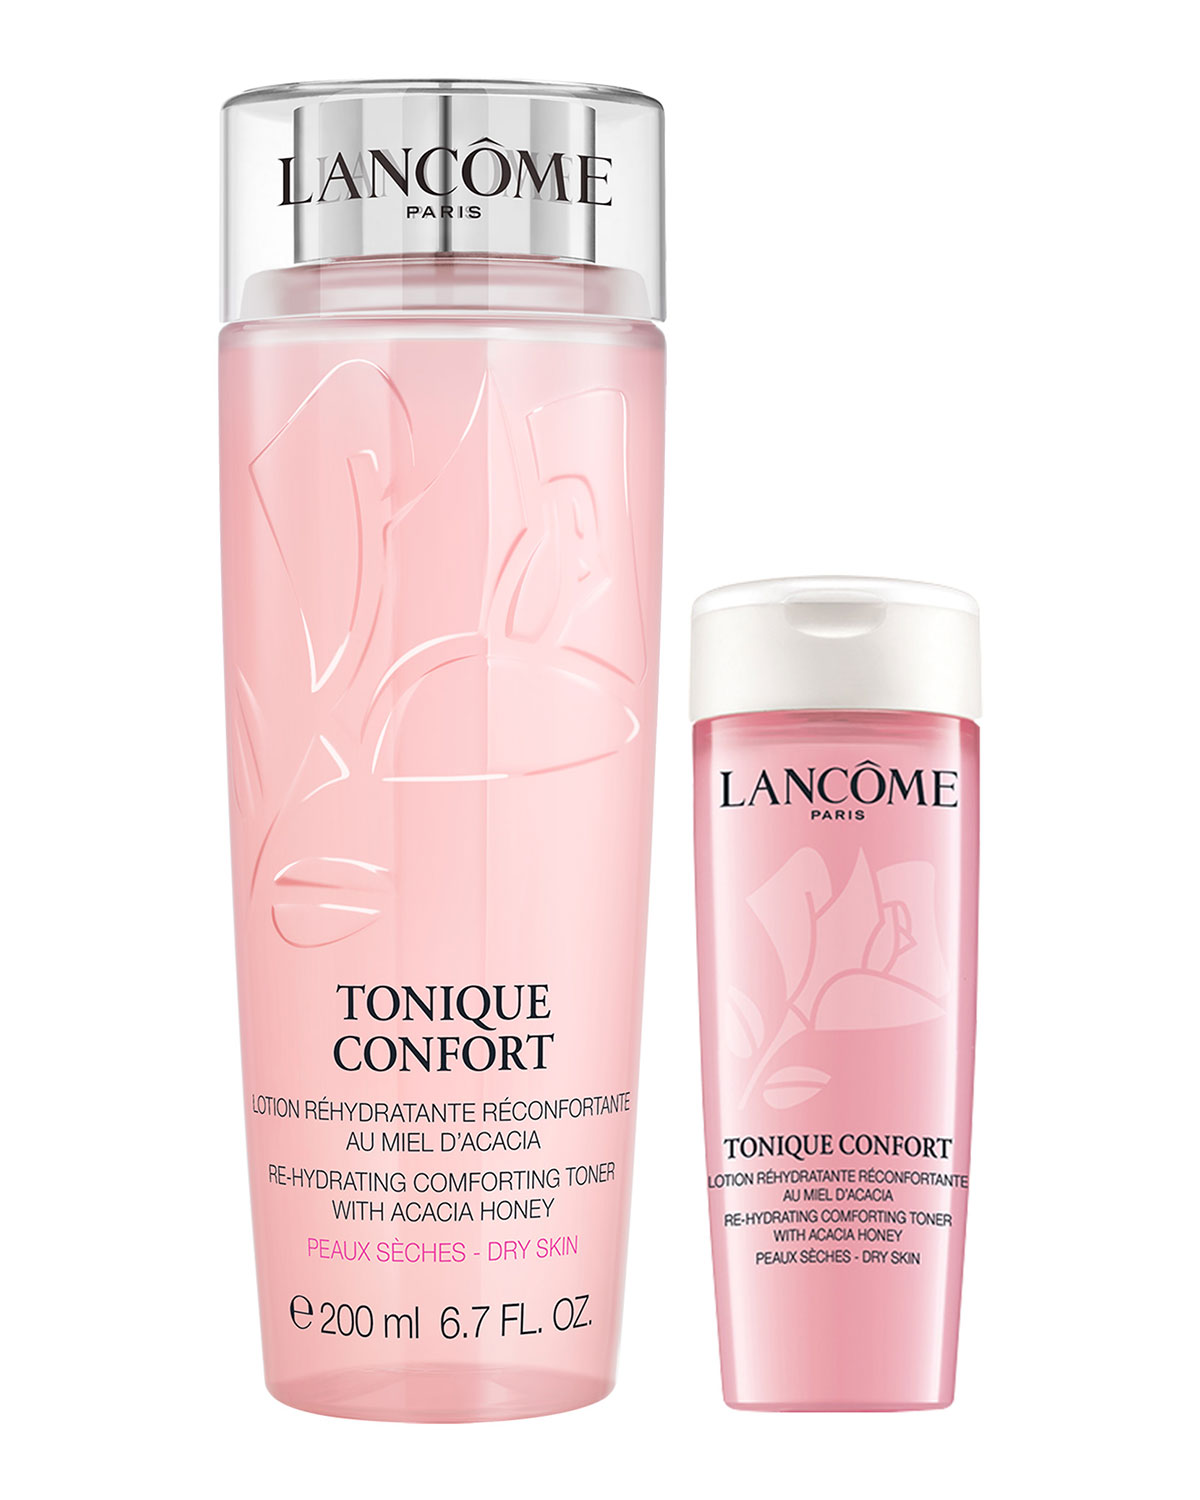 Lancome Tonique Confort Duo Bundle